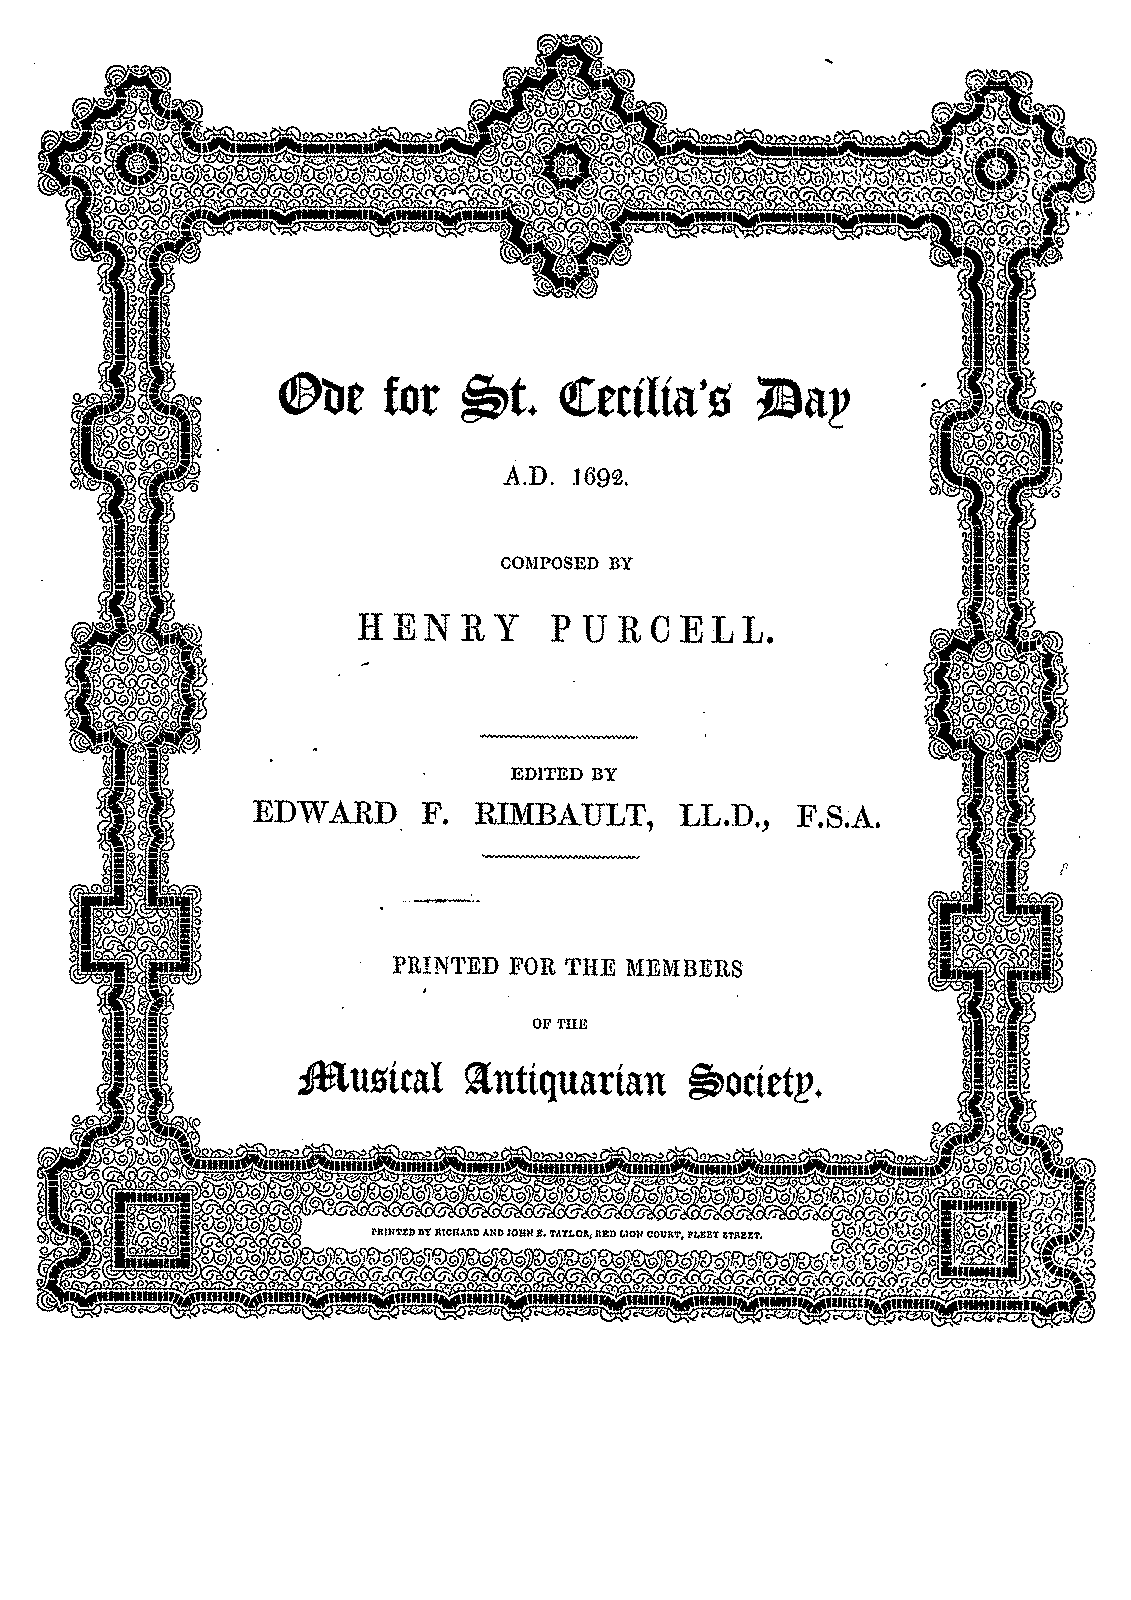 PMLP69461-Purcell Cecilia Day Intro.pdf